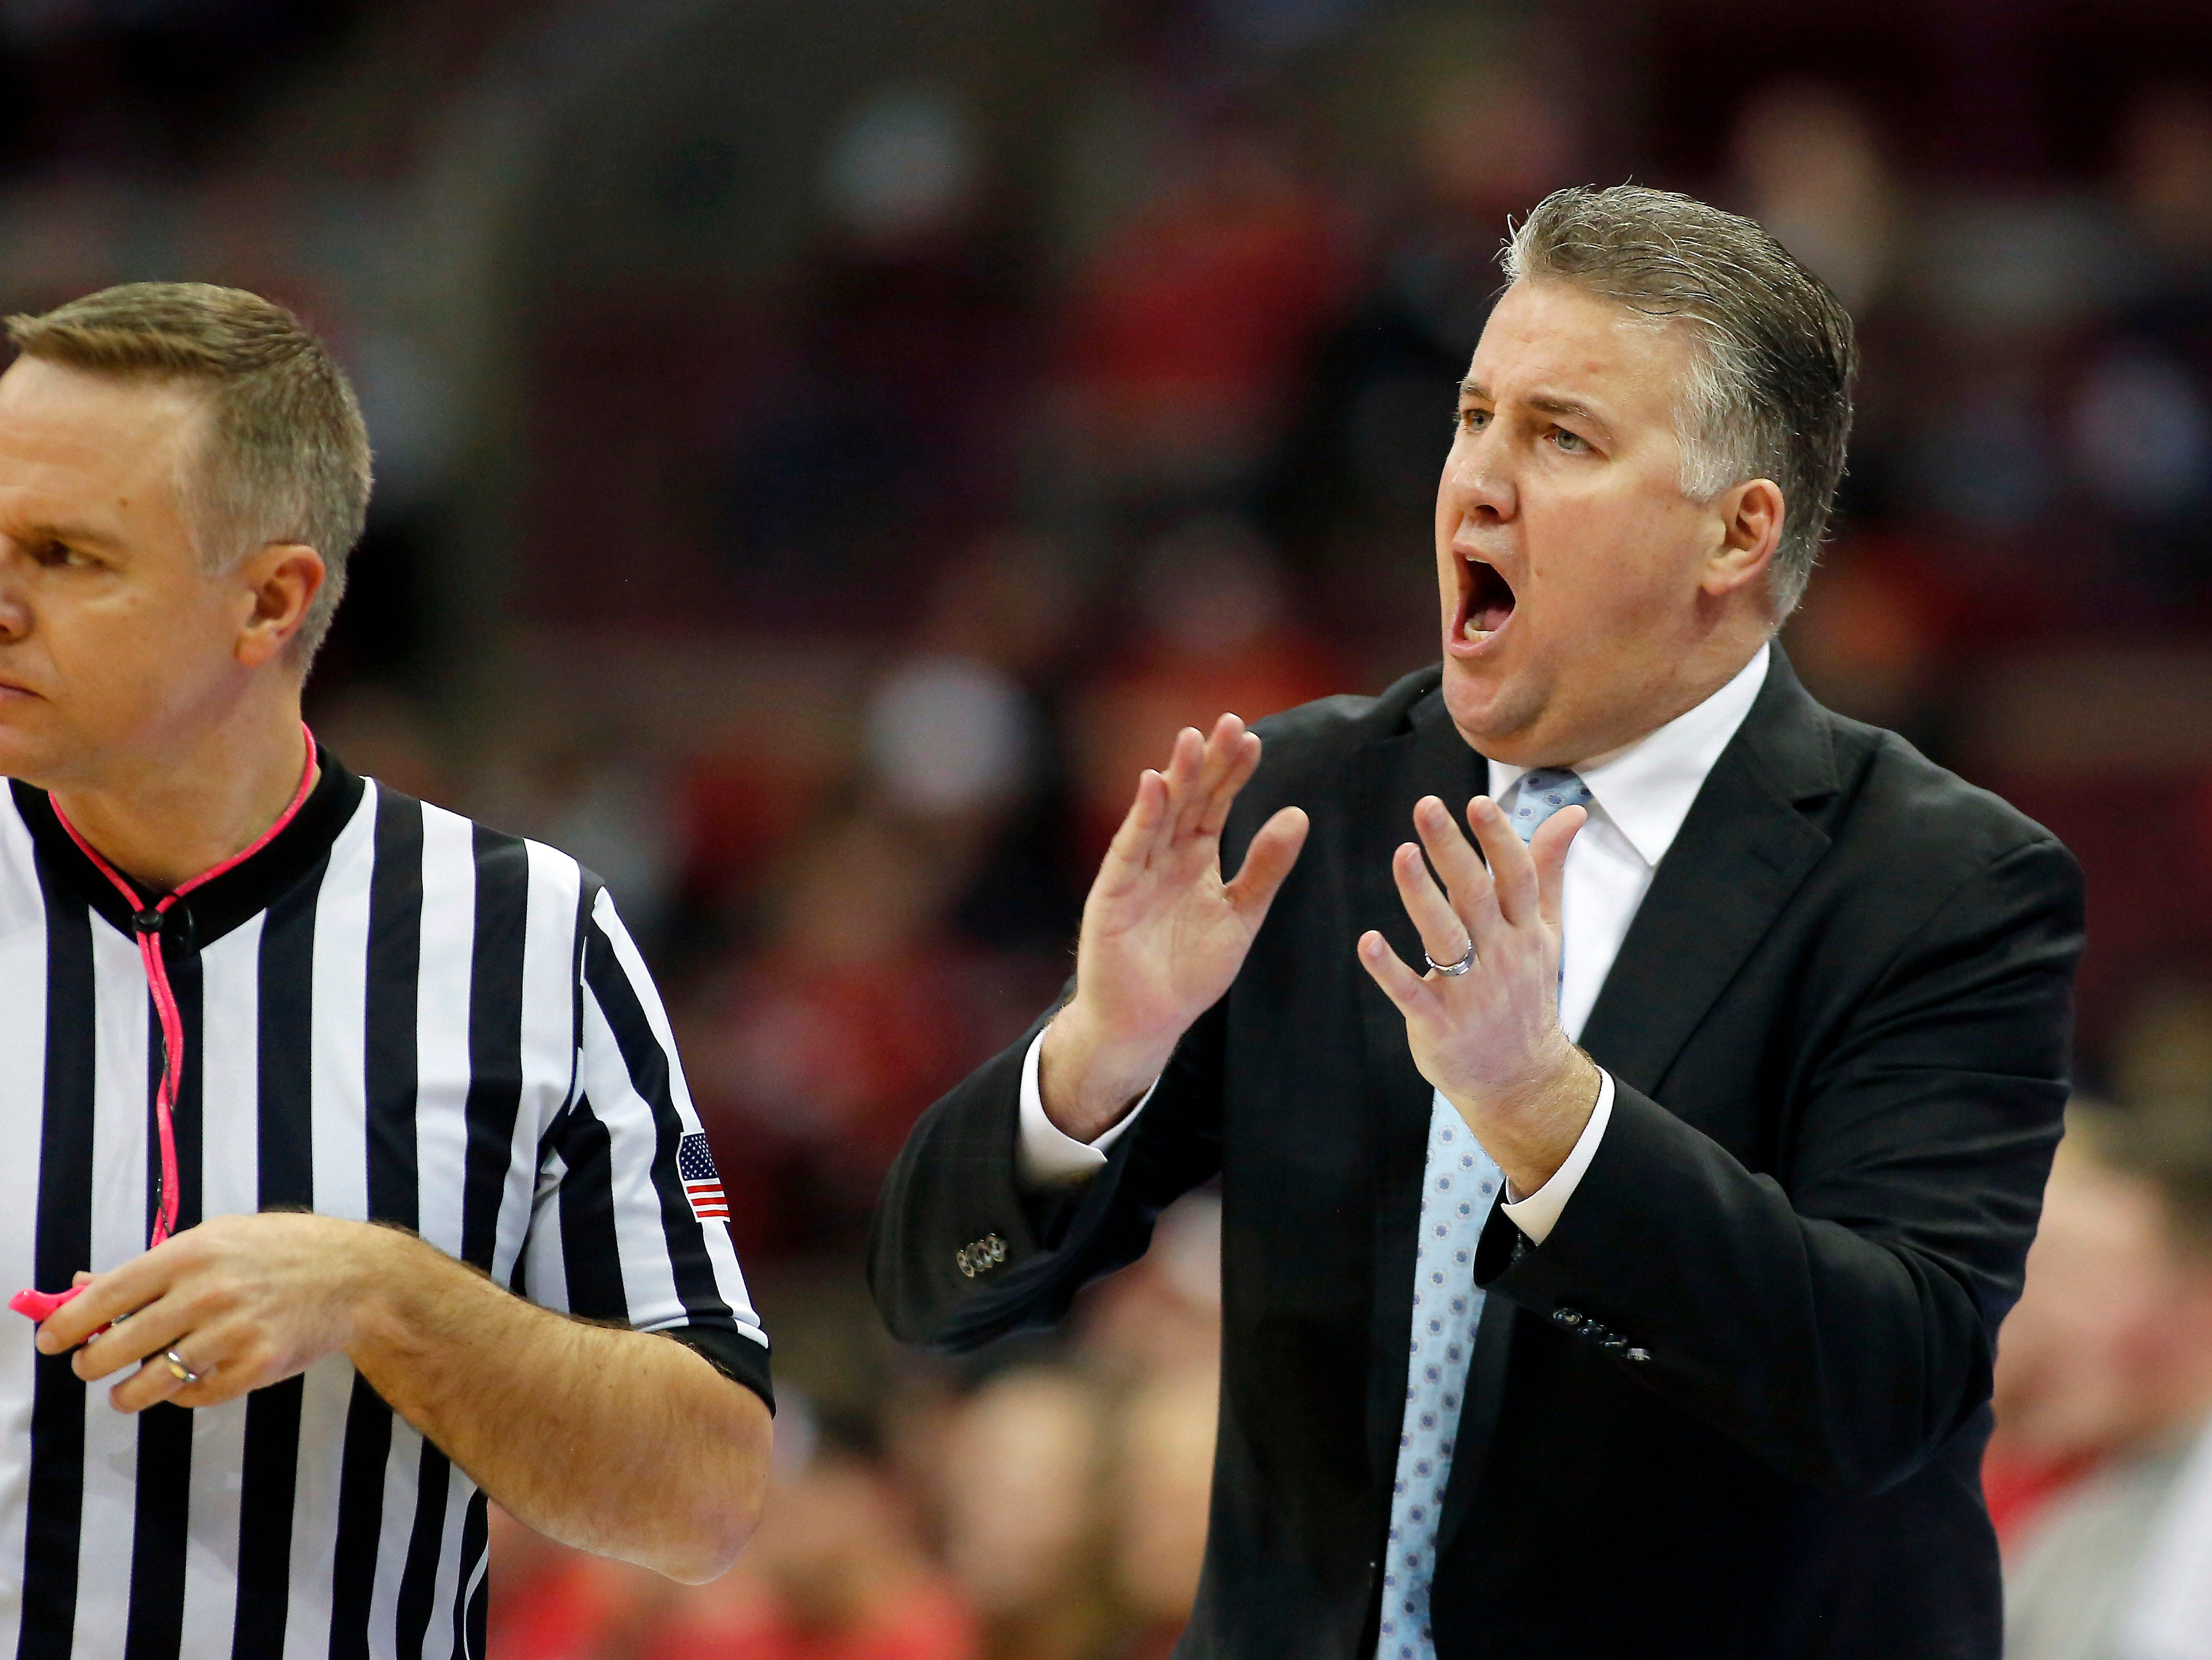 Jan 23, 2019; Columbus, OH, USA; Purdue Boilermakers head coach Matt Painter during the first half against the Ohio State Buckeyes at Value City Arena. Mandatory Credit: Joe Maiorana-USA TODAY Sports